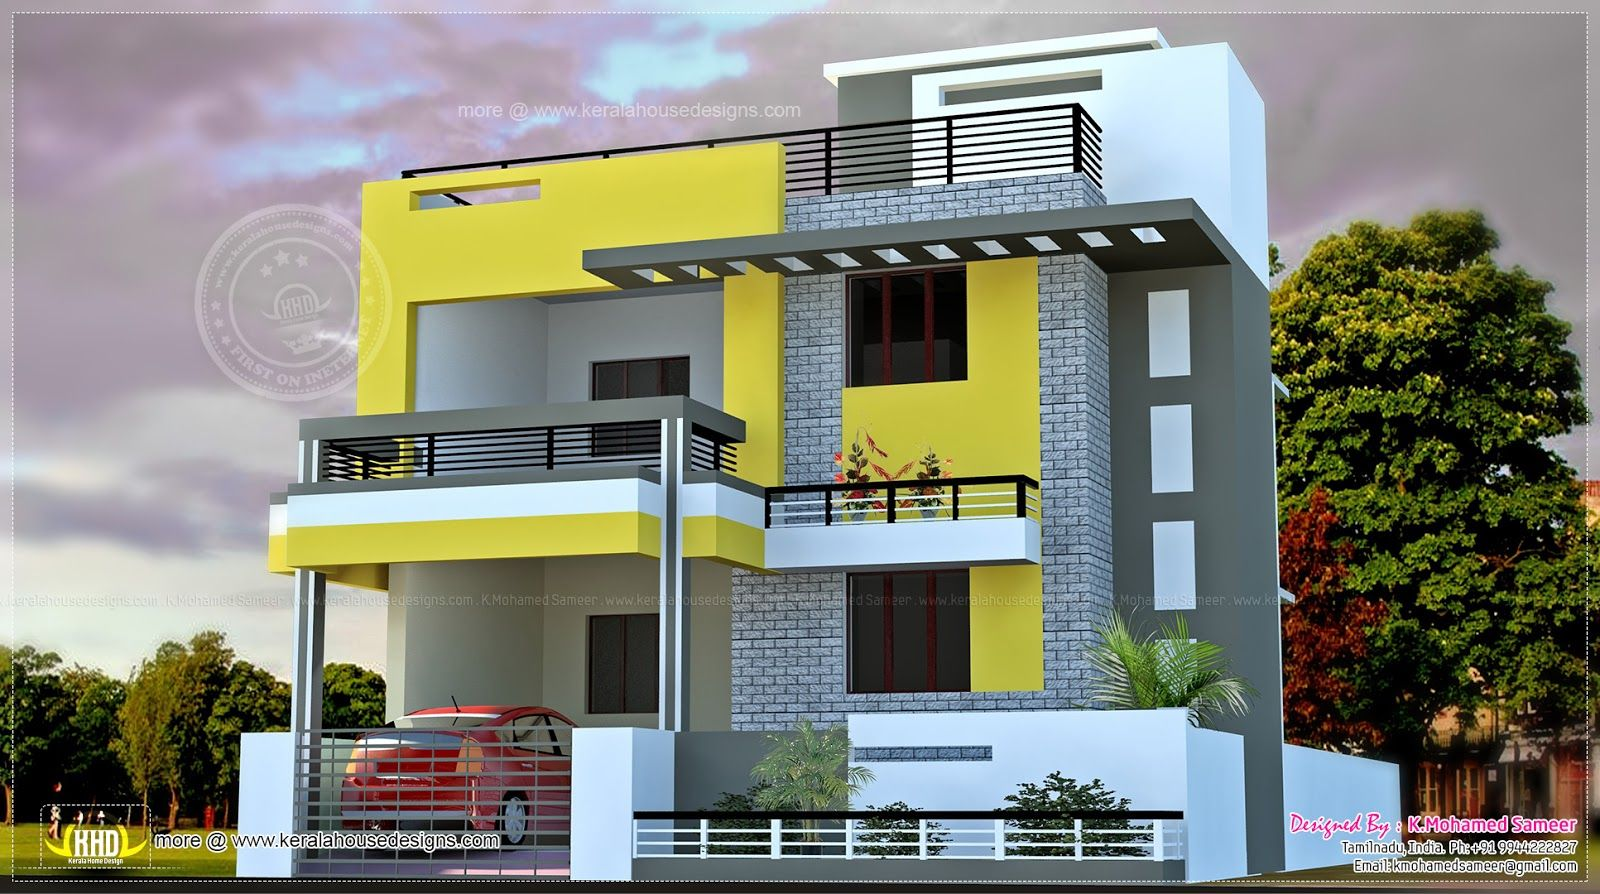 Elevations of residential buildings in indian photo for Elevation ideas for new homes